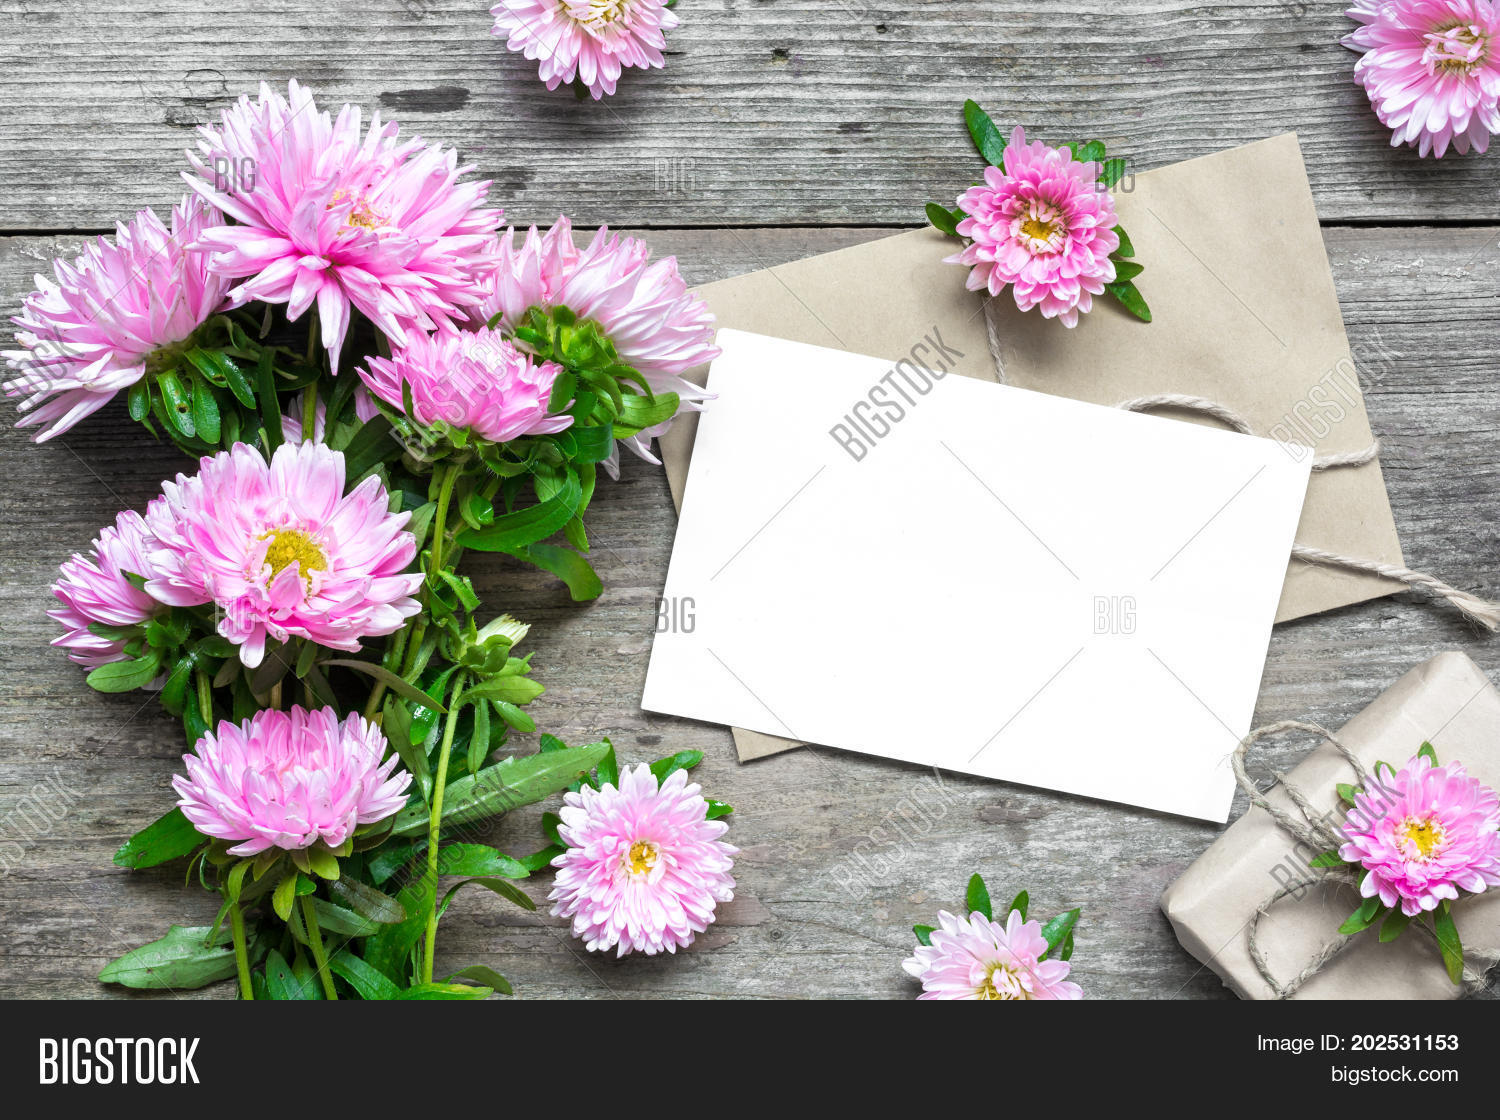 Blank white greeting image photo free trial bigstock blank white greeting card with pink aster flowers bouquet and envelope with flower buds and gift izmirmasajfo